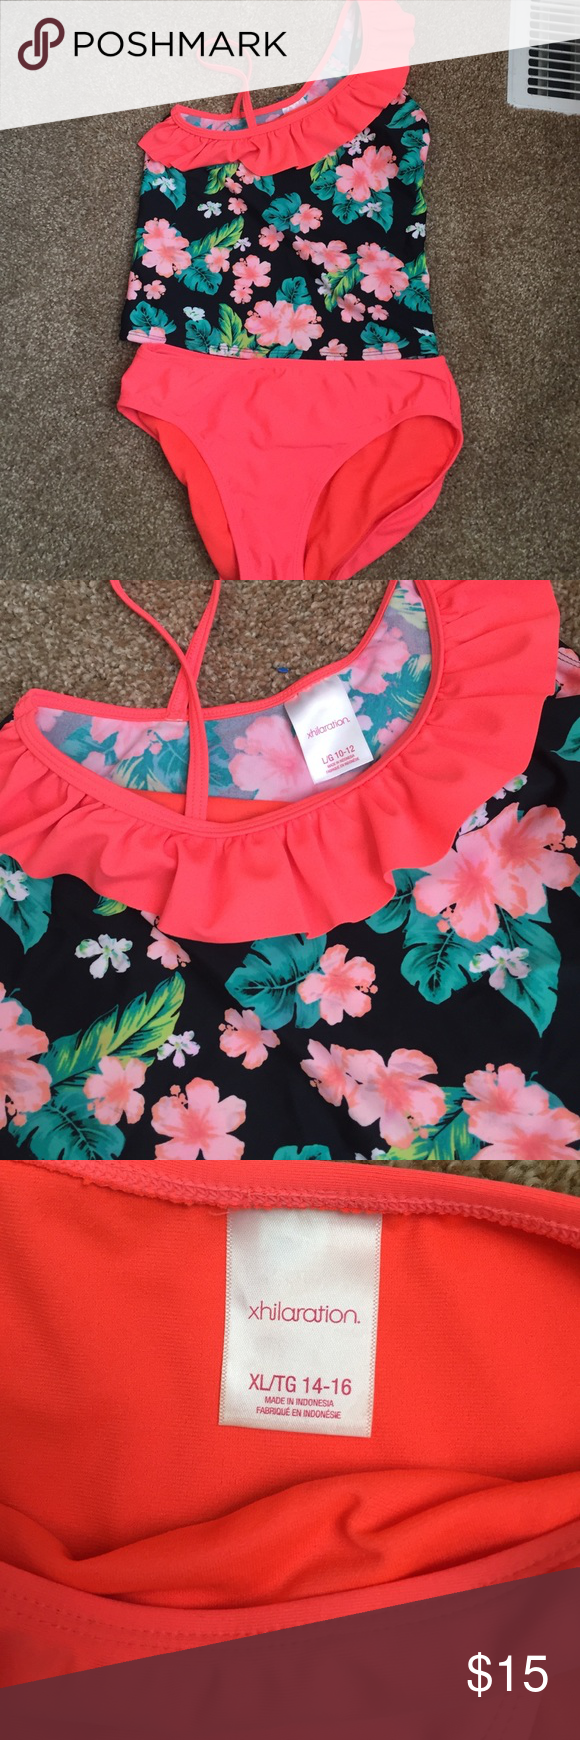 Xhilaration kids tankini Has been worn once but barely any signs of wear (only a little bit of scuffing on bottoms). The top is a size large(10/12) and the bottoms are an xl(14/16). They could definitely be purchased separately!! Xhilaration Swim